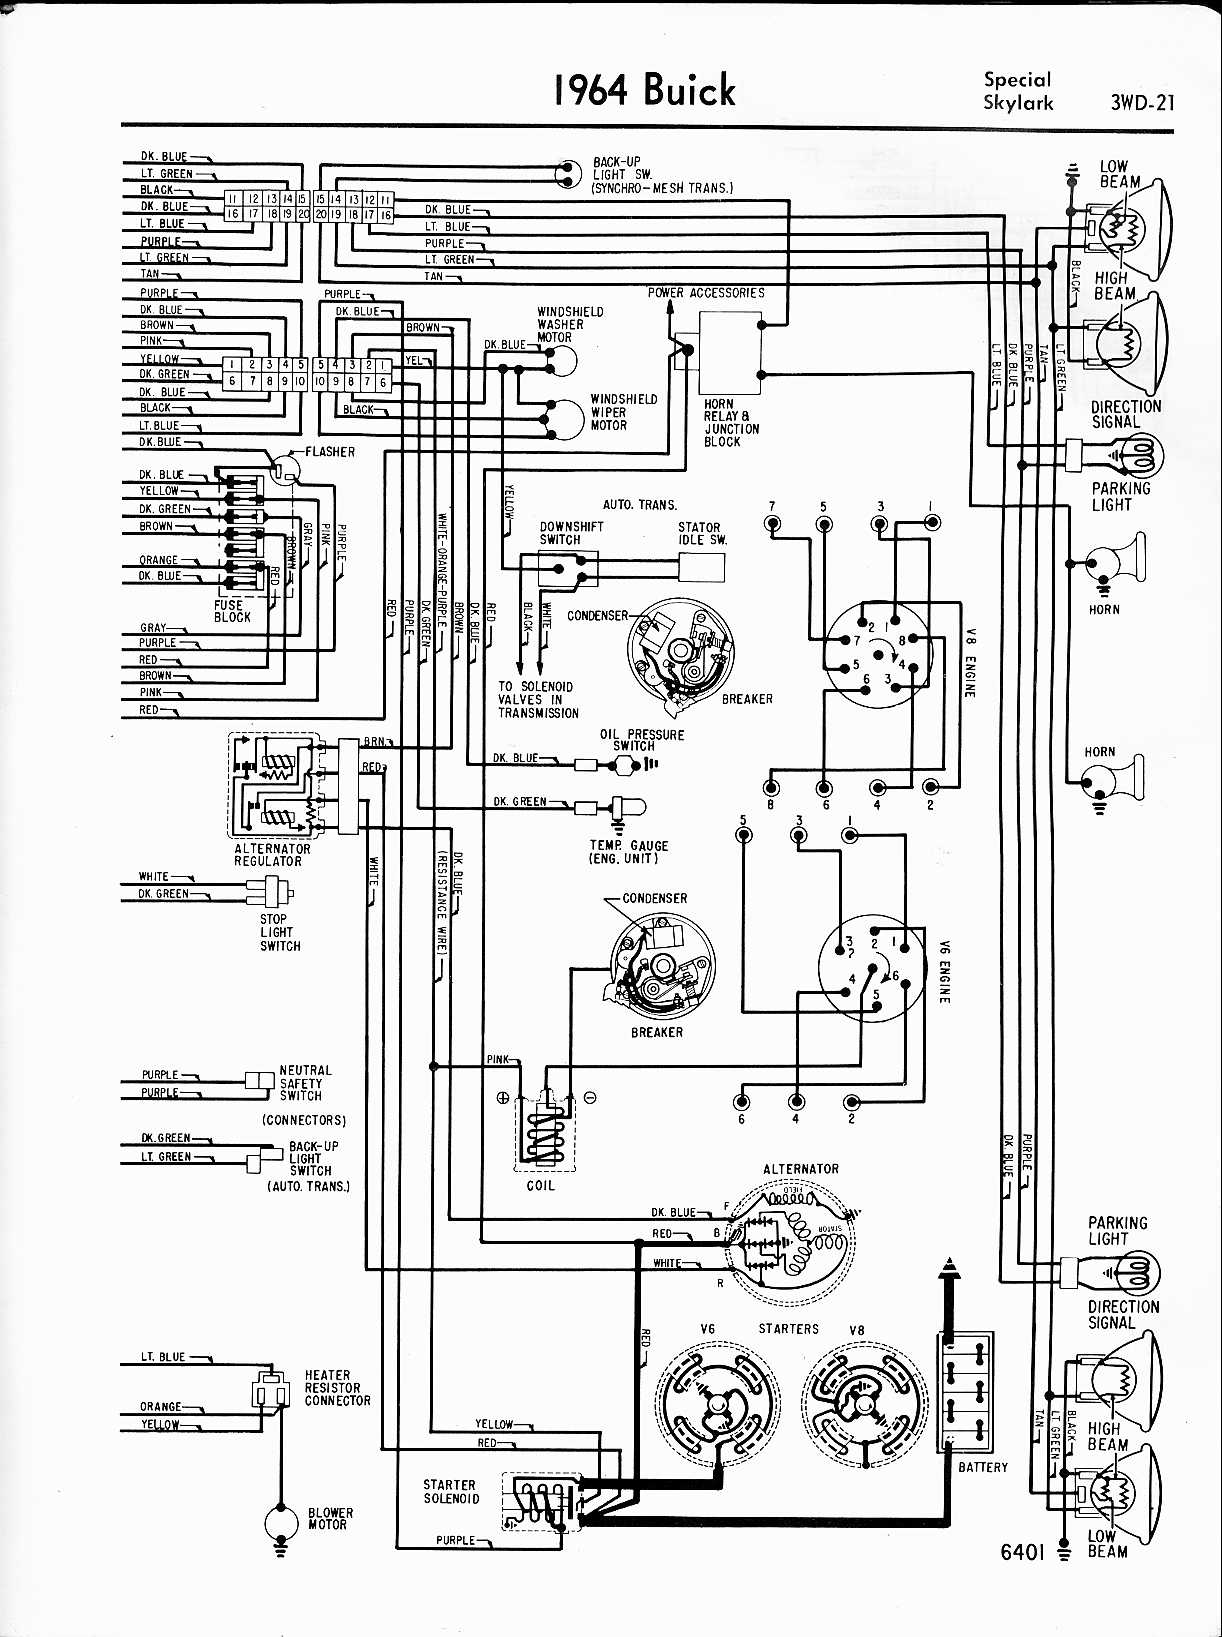 hight resolution of 1966 buick riviera wiring diagram simple wiring diagram rh david huggett co uk 1996 buick park